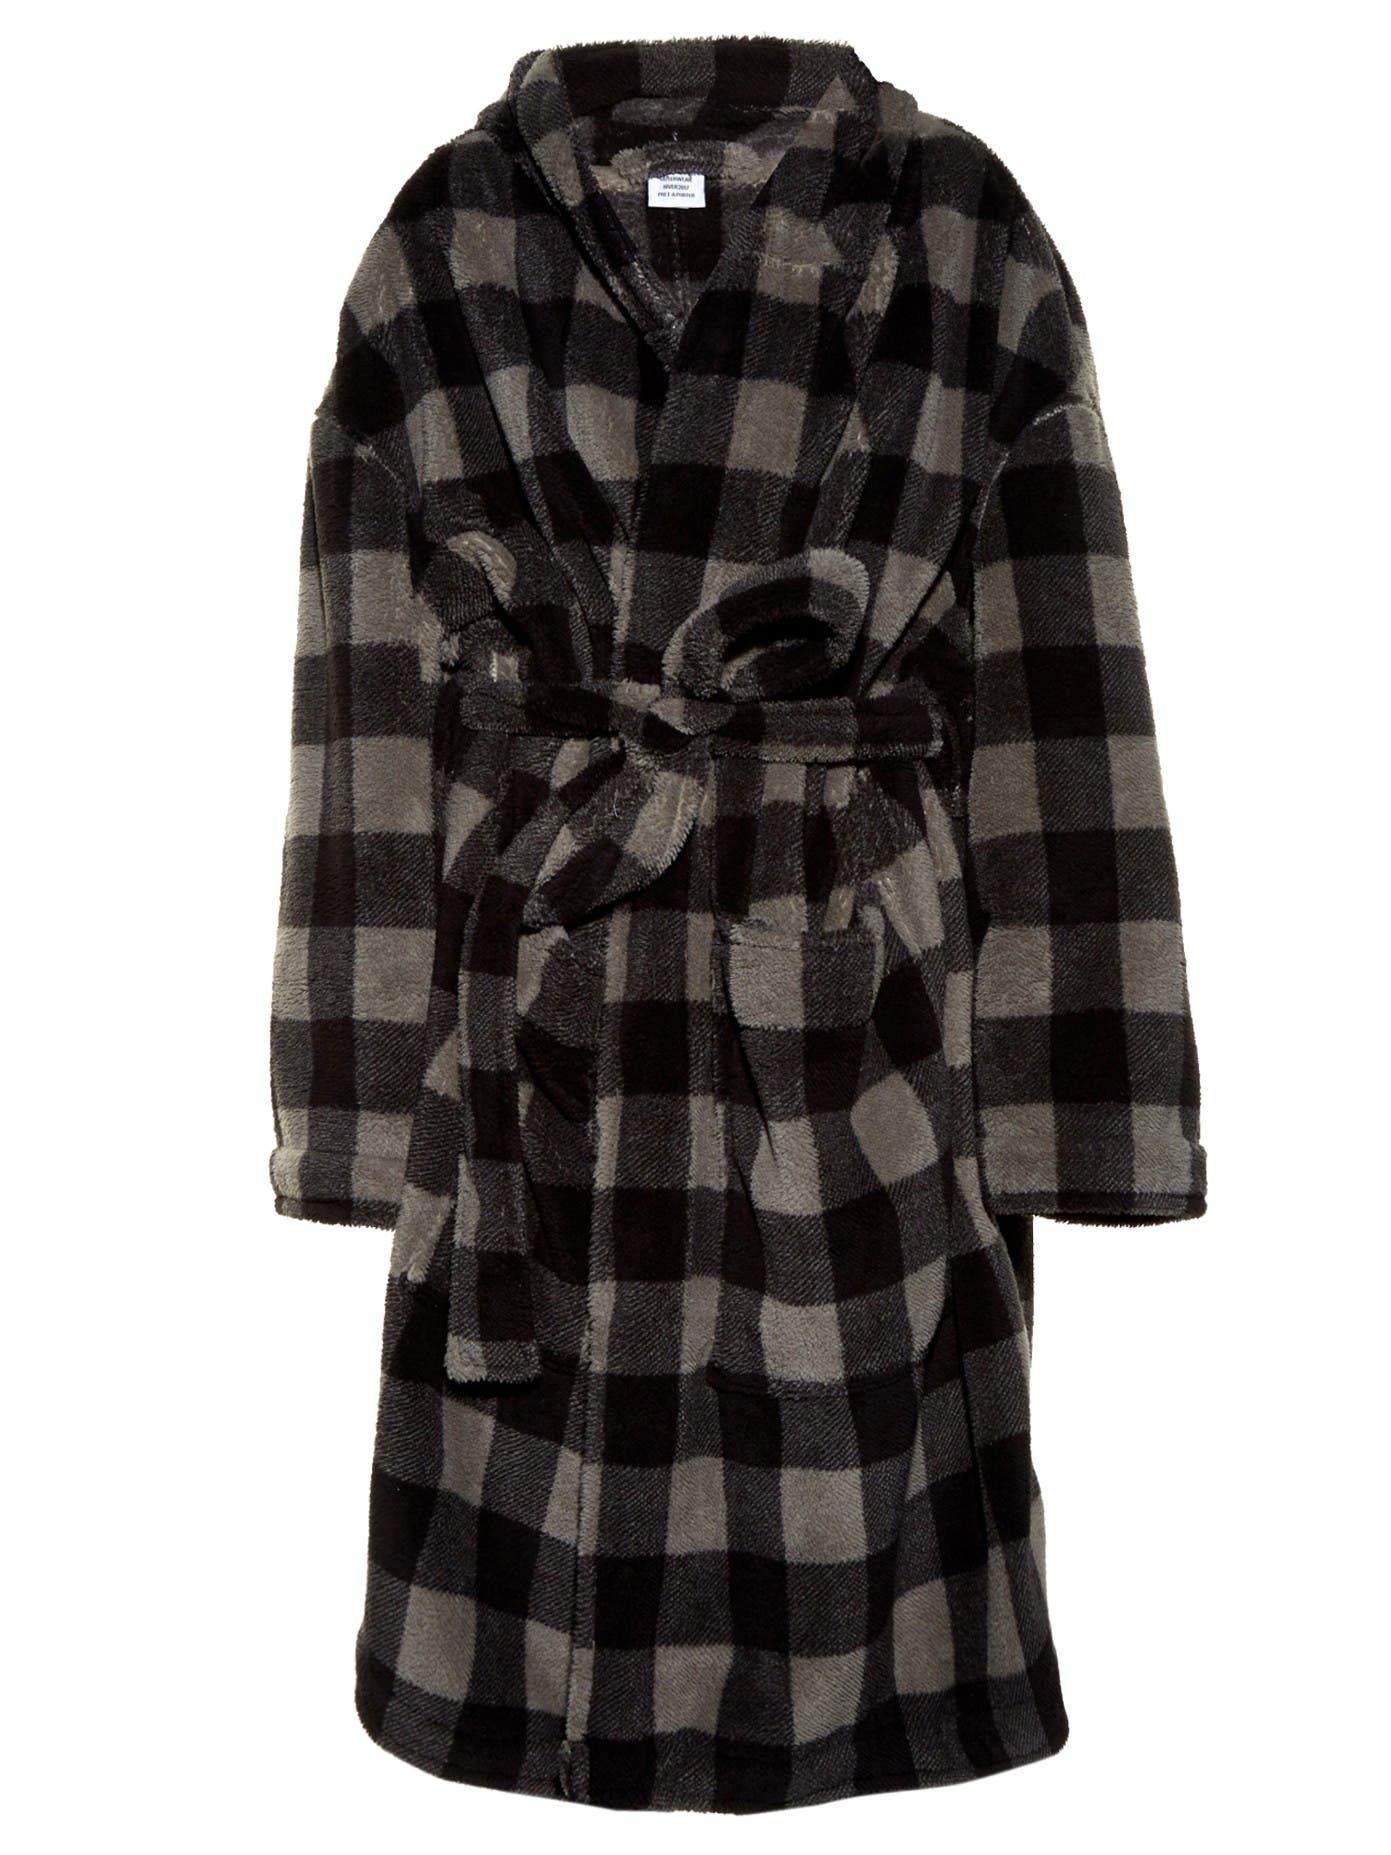 http://www.matchesfashion.com/intl/products/Vetements-Checked-hooded-fleece-robe-coat-1065809